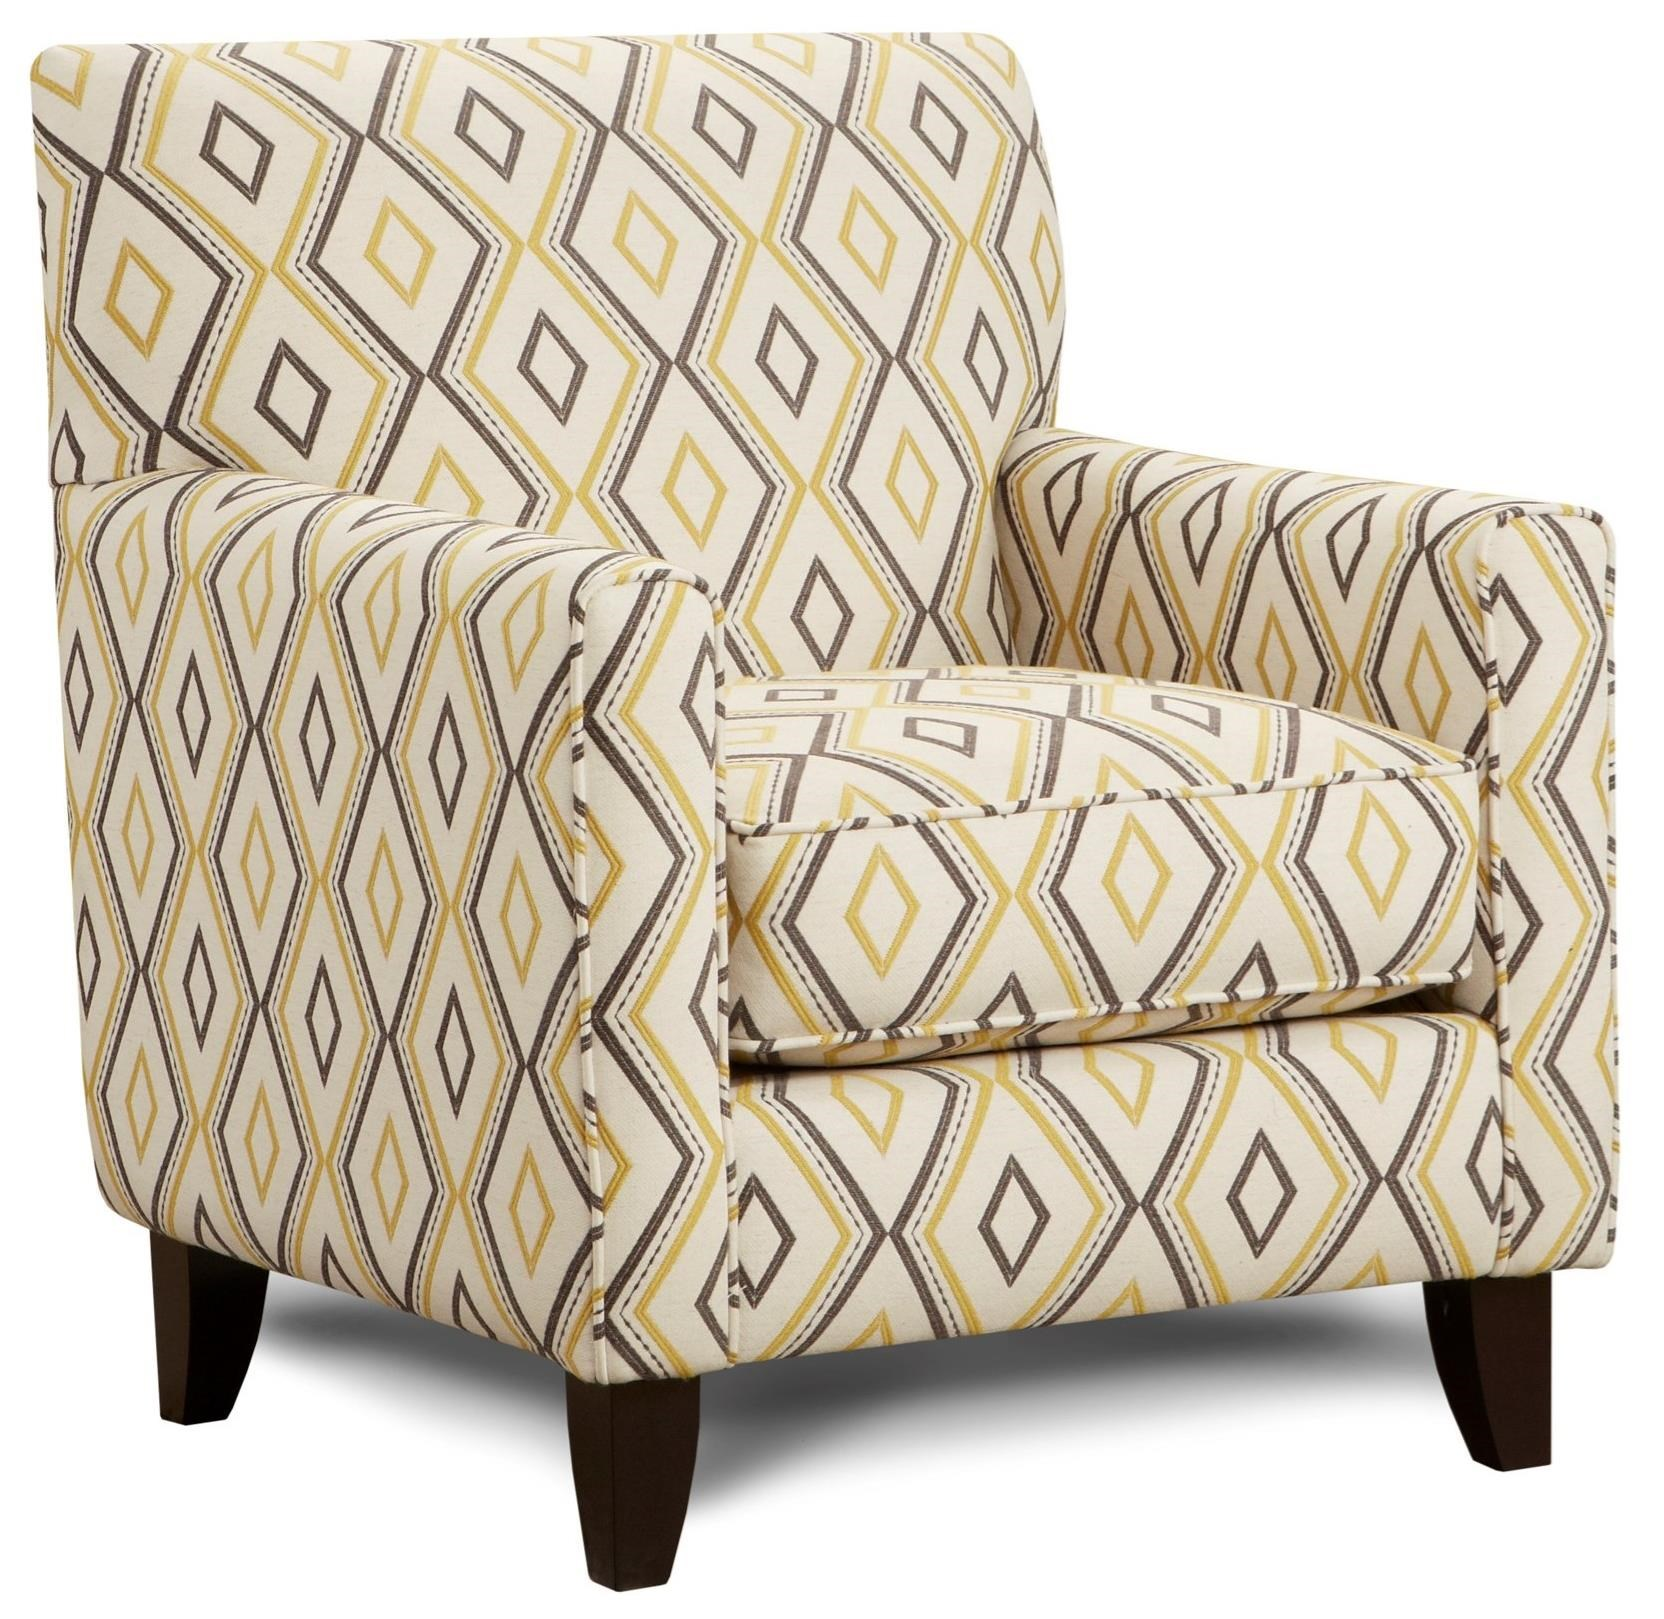 702 Accent Chair by Fusion Furniture at Wilcox Furniture